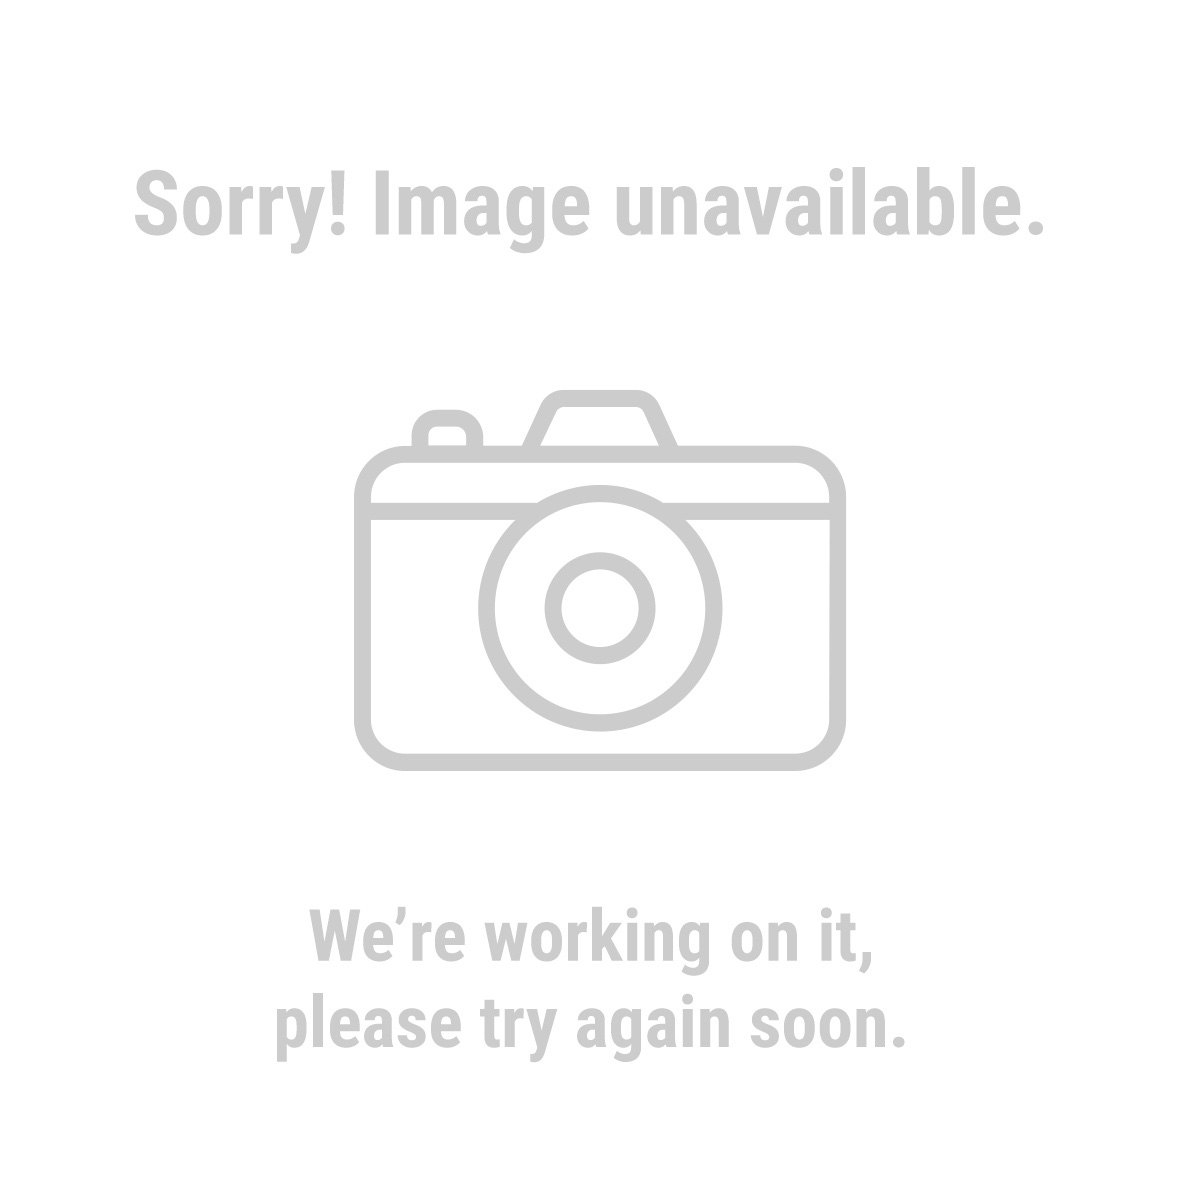 Central Pneumatic 68231 125 PSI Air Flow Regulator with Gauge